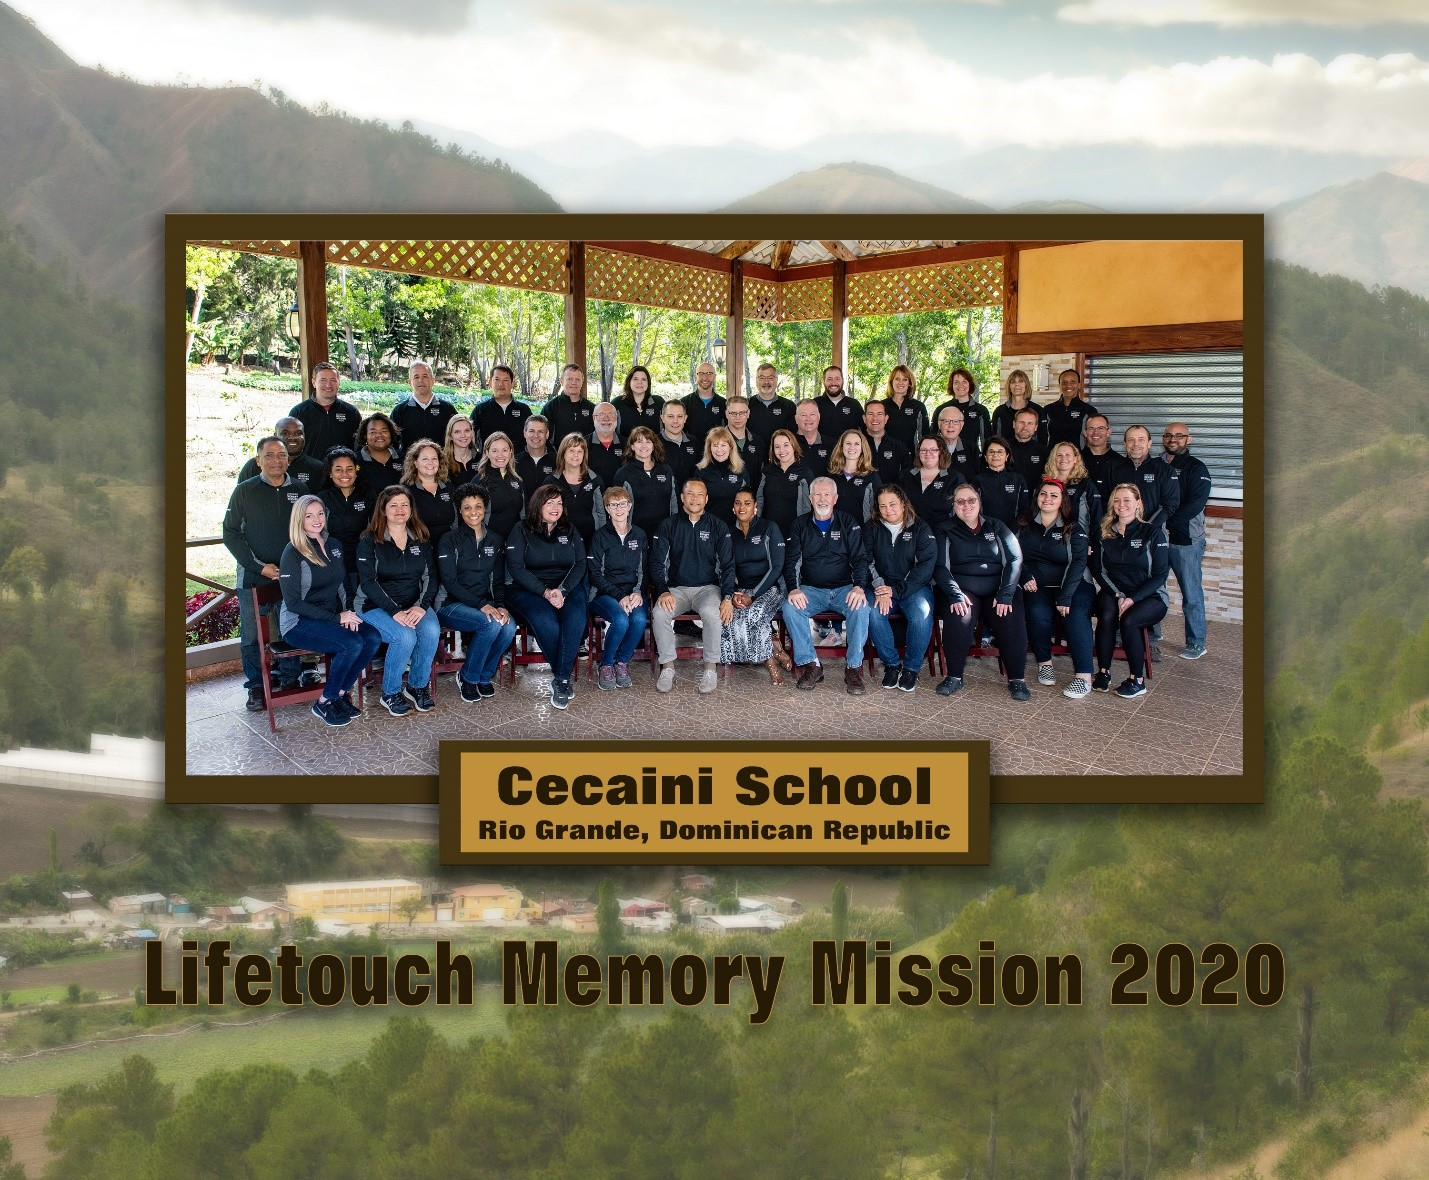 Memory Mission group picture